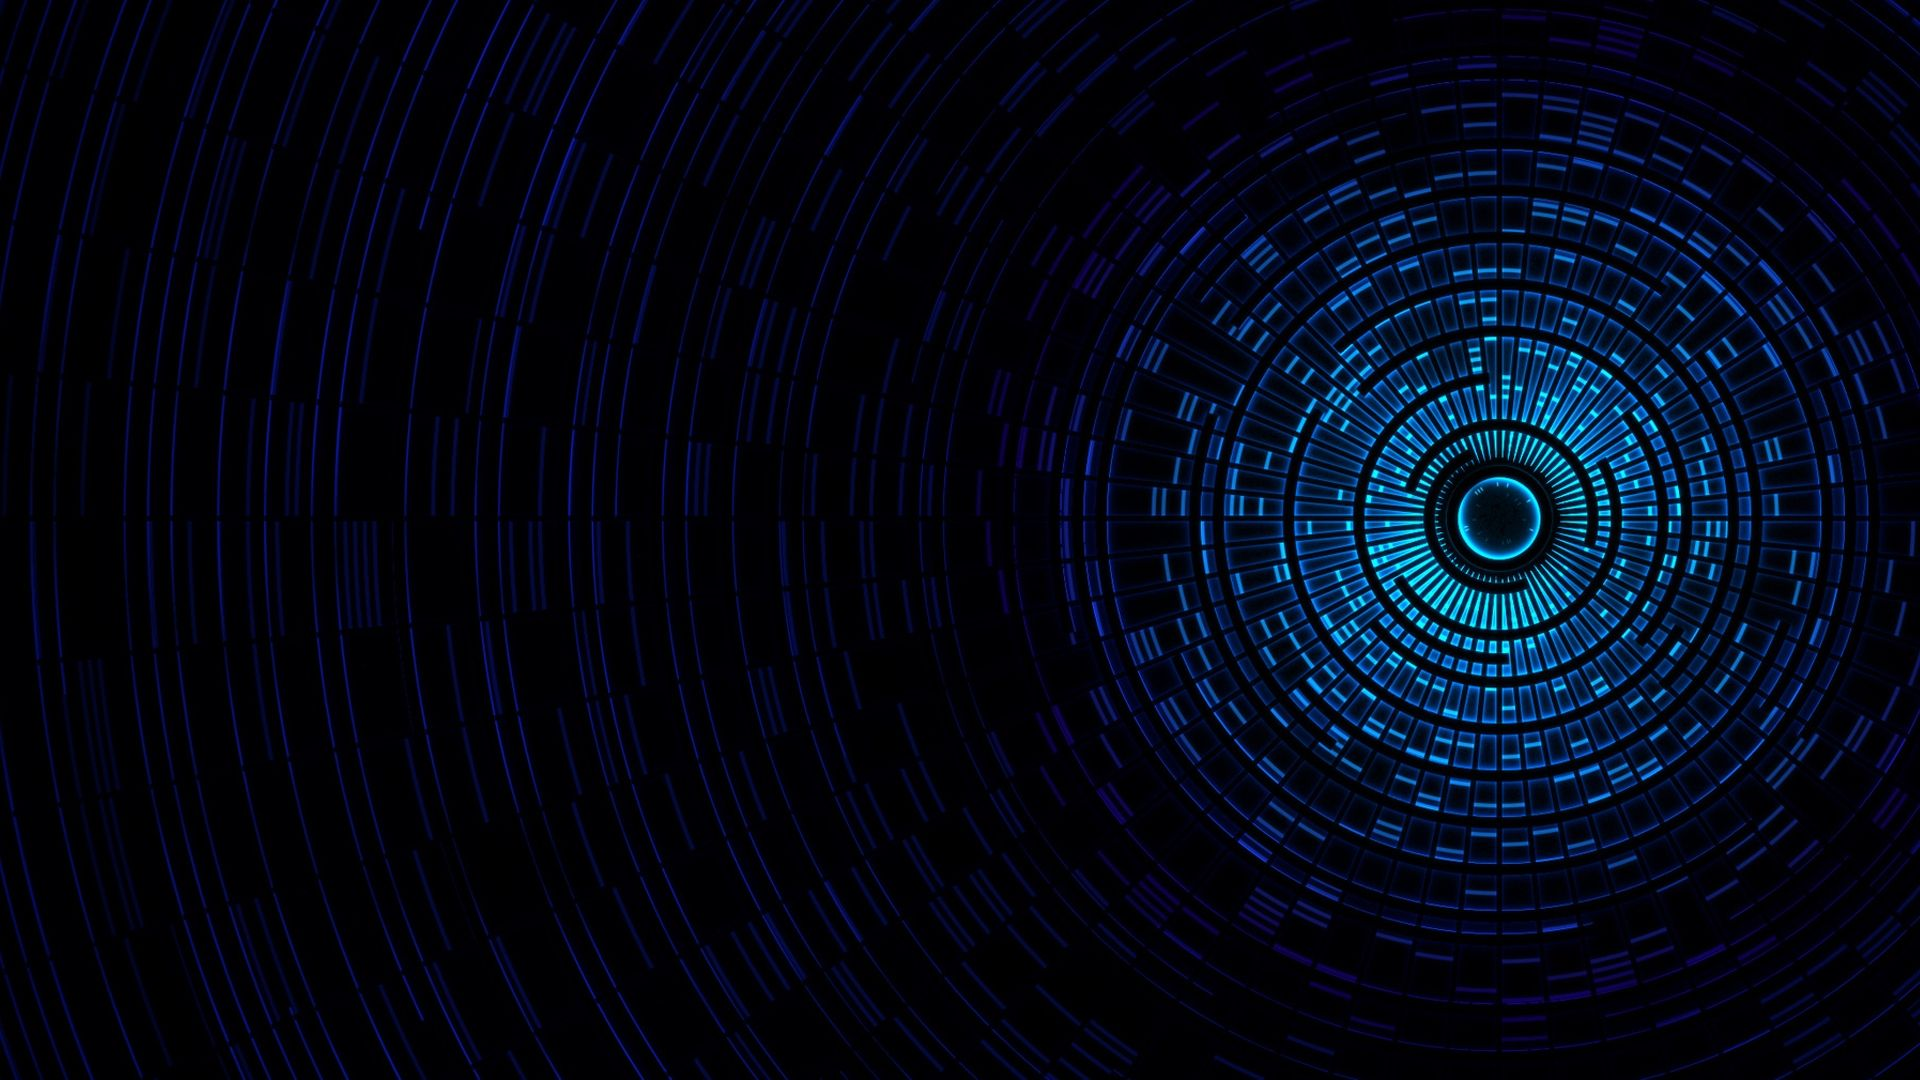 Black Abstract Wallpapers 1080p Monodomo 4k Wallpapers For Pc Dark Blue Wallpaper Black And Blue Wallpaper